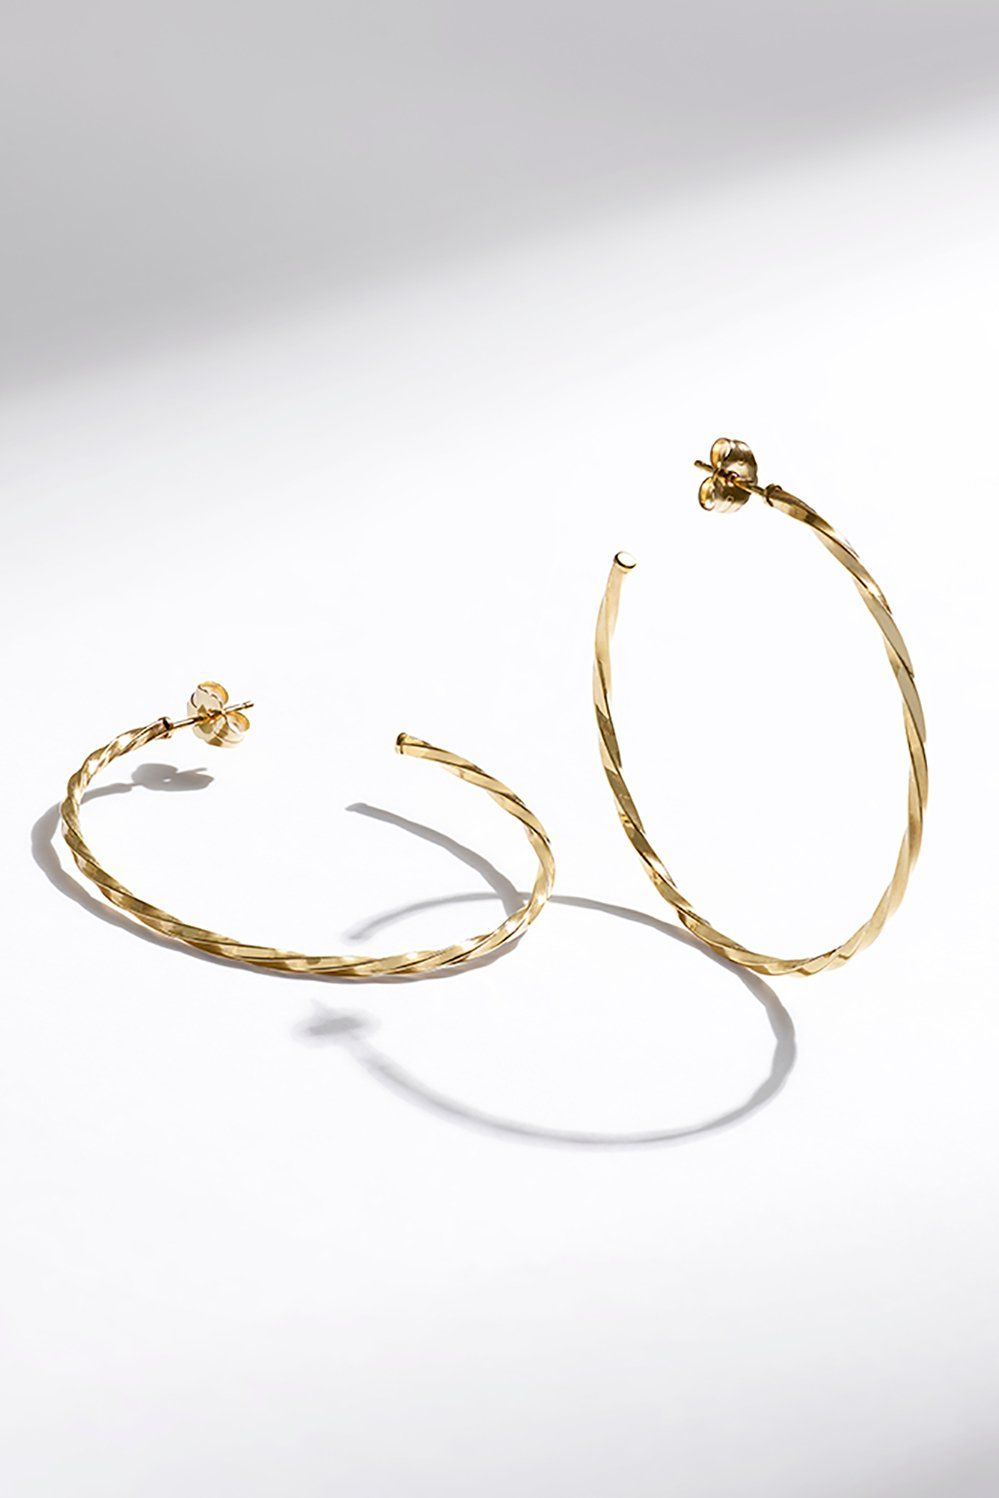 When Only Gold Will Do Livegold In These Classic Yellow Gold Hoop Earrings Wedding Jewellery Inspiration Shop Earrings Jewelry